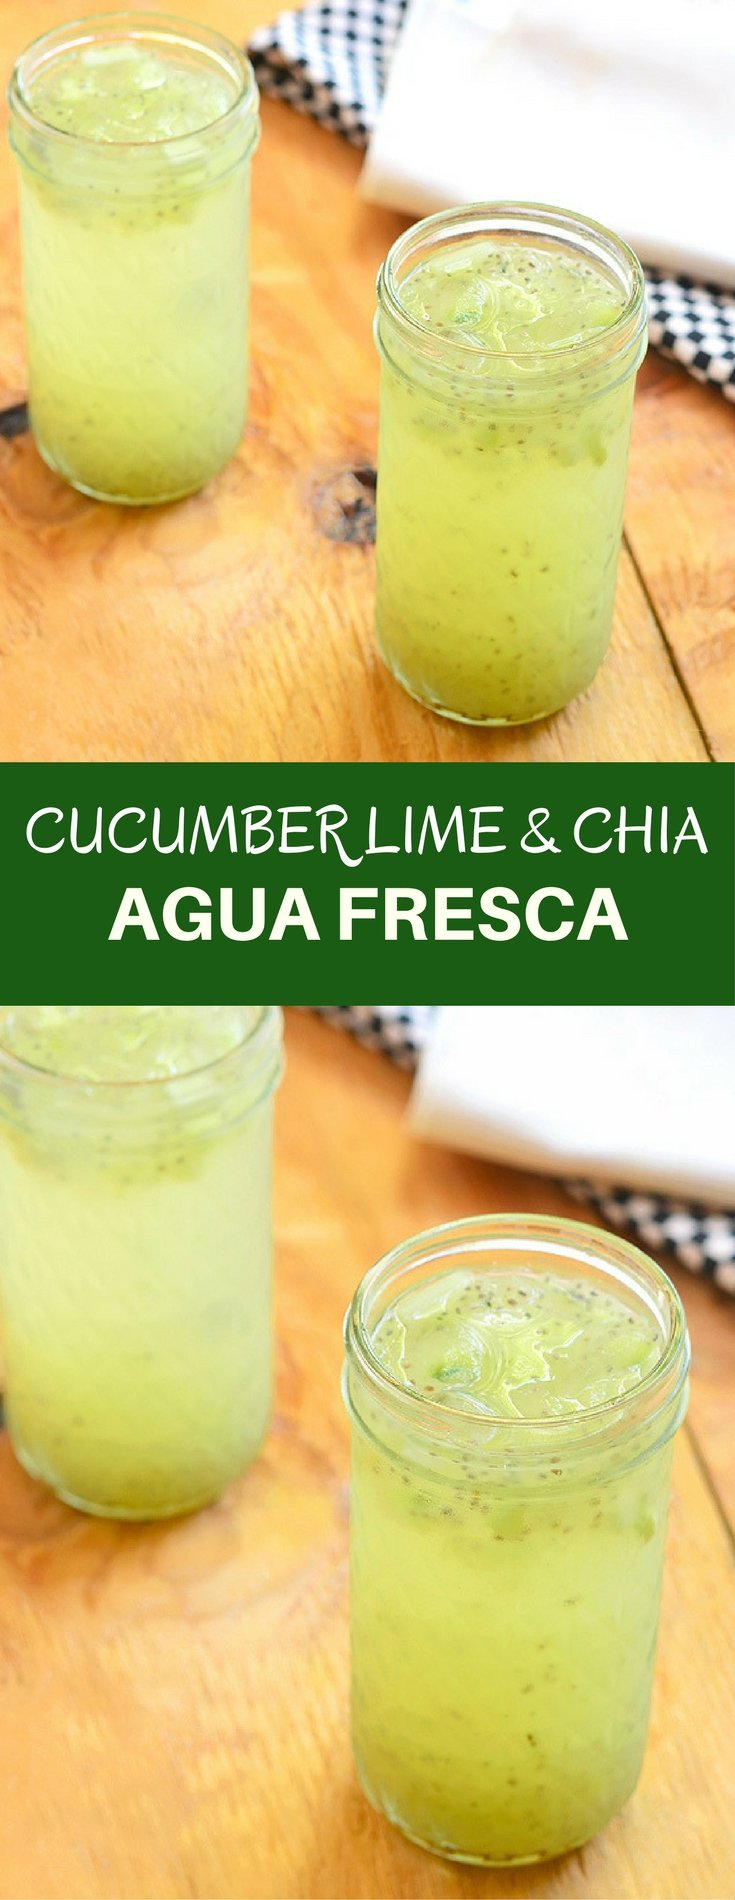 Cucumber Lime and Chia Fresca is a refreshing drink you'd want all summer long. With fresh cucumbers, freshly-squeezed lime juice, and superfood chia, this aqua fresca is a healthy and delicious way to hydrate!